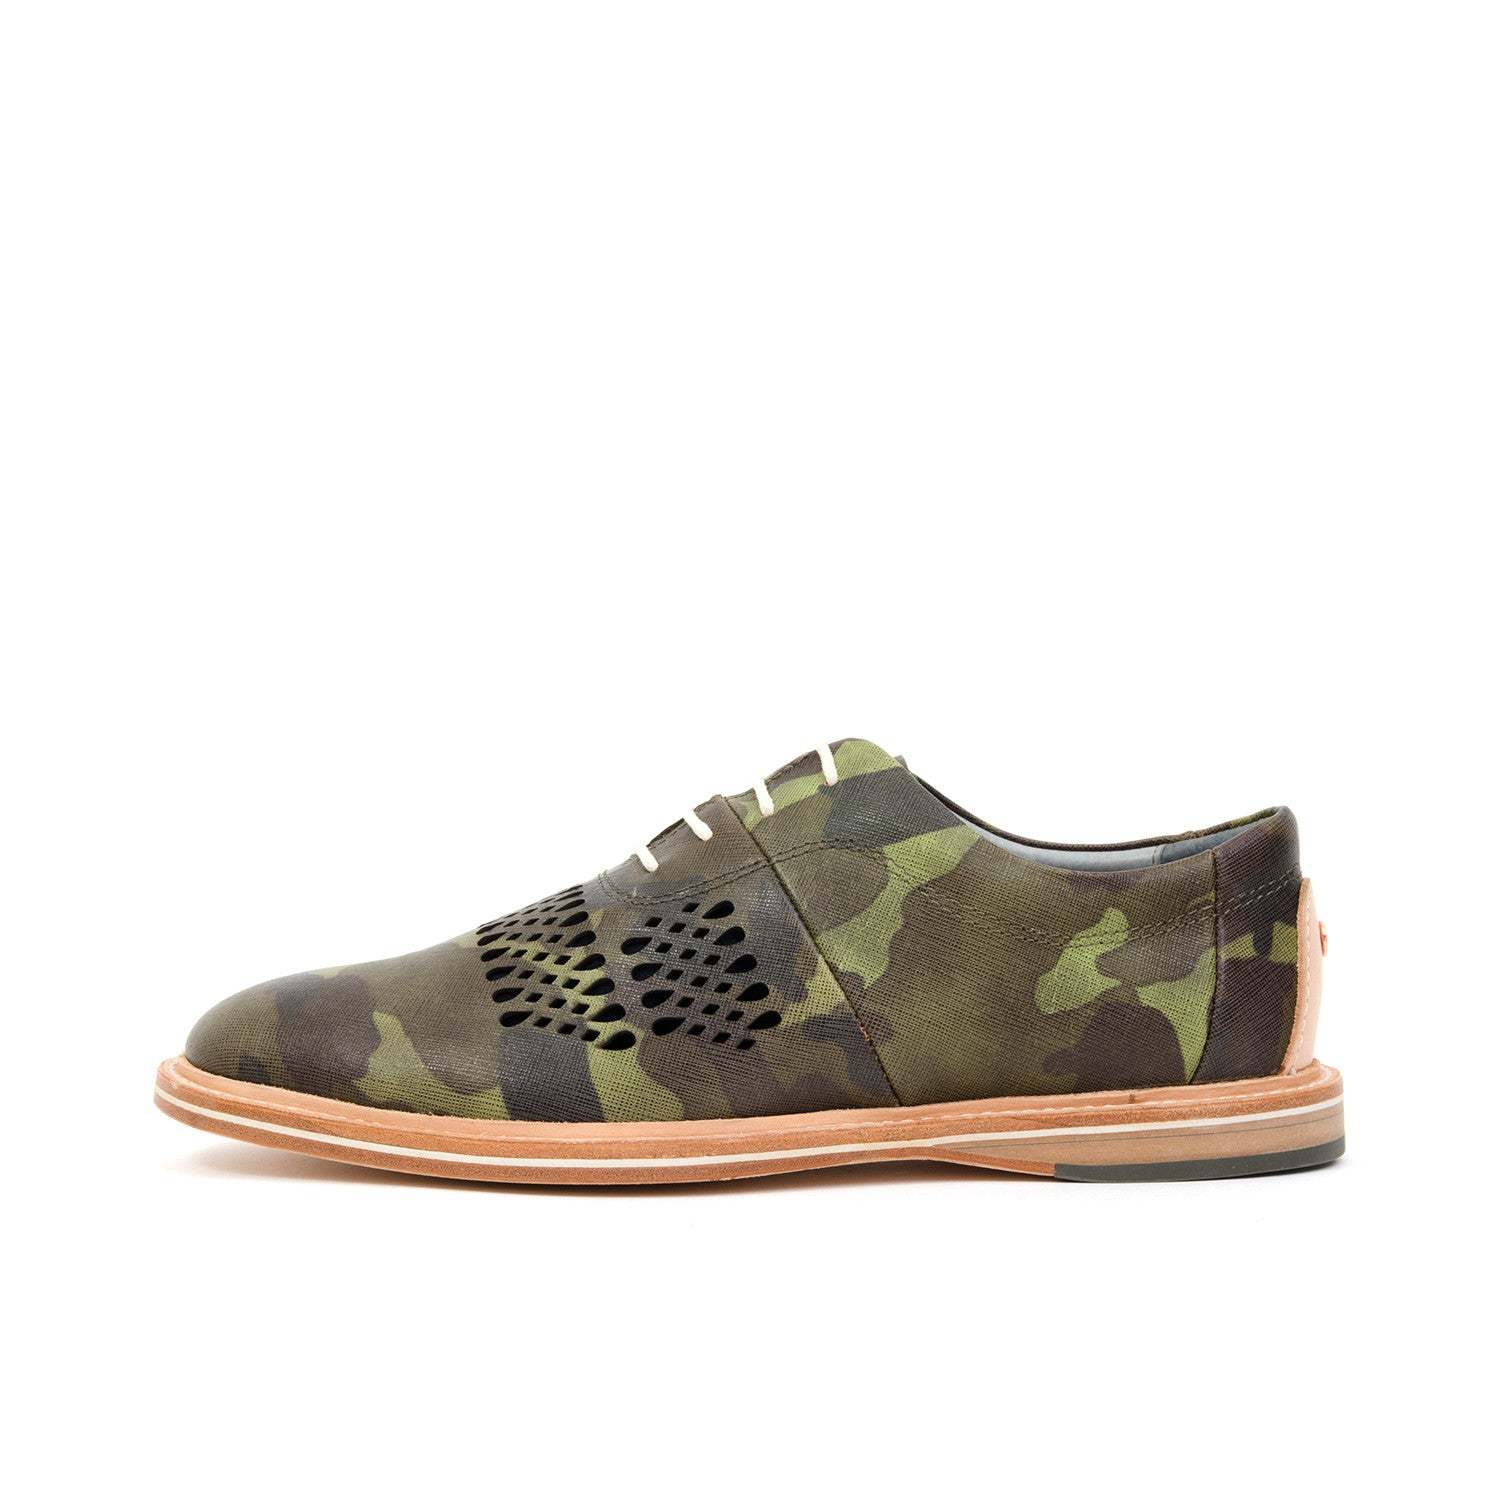 Thorocraft Mercer Saffian Camo - Concrete